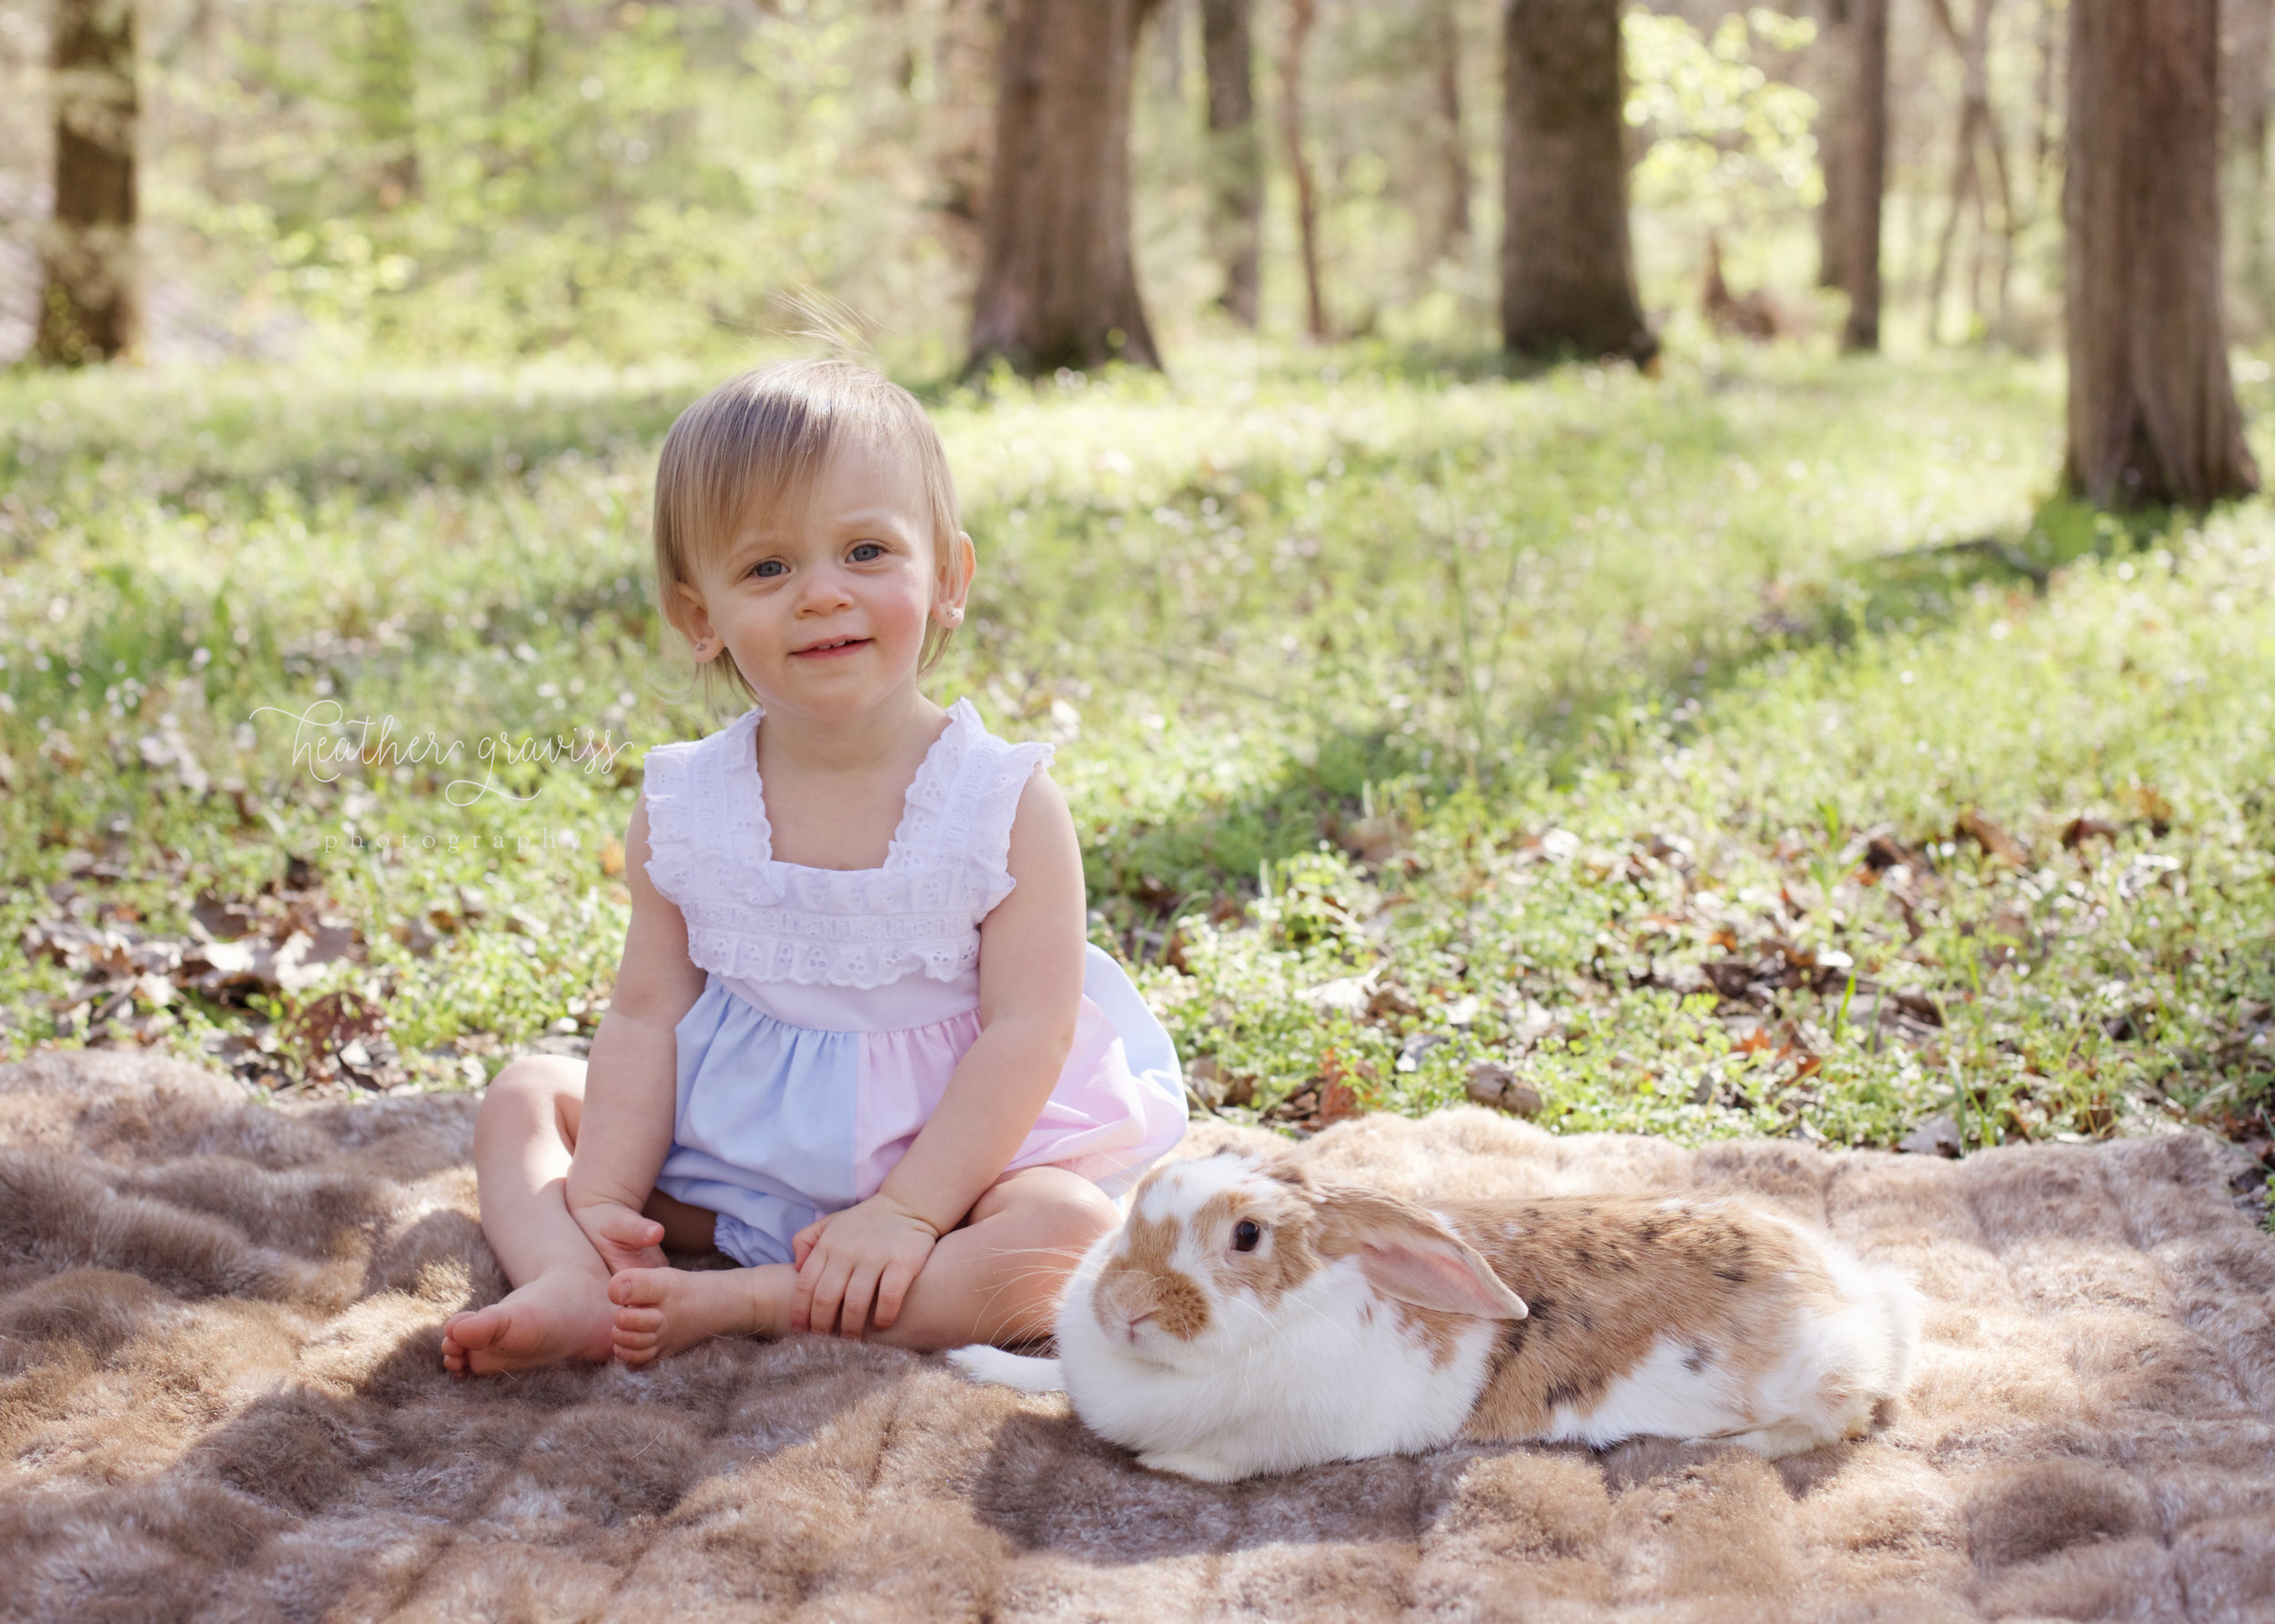 baby-girl-and-rabbit.jpg